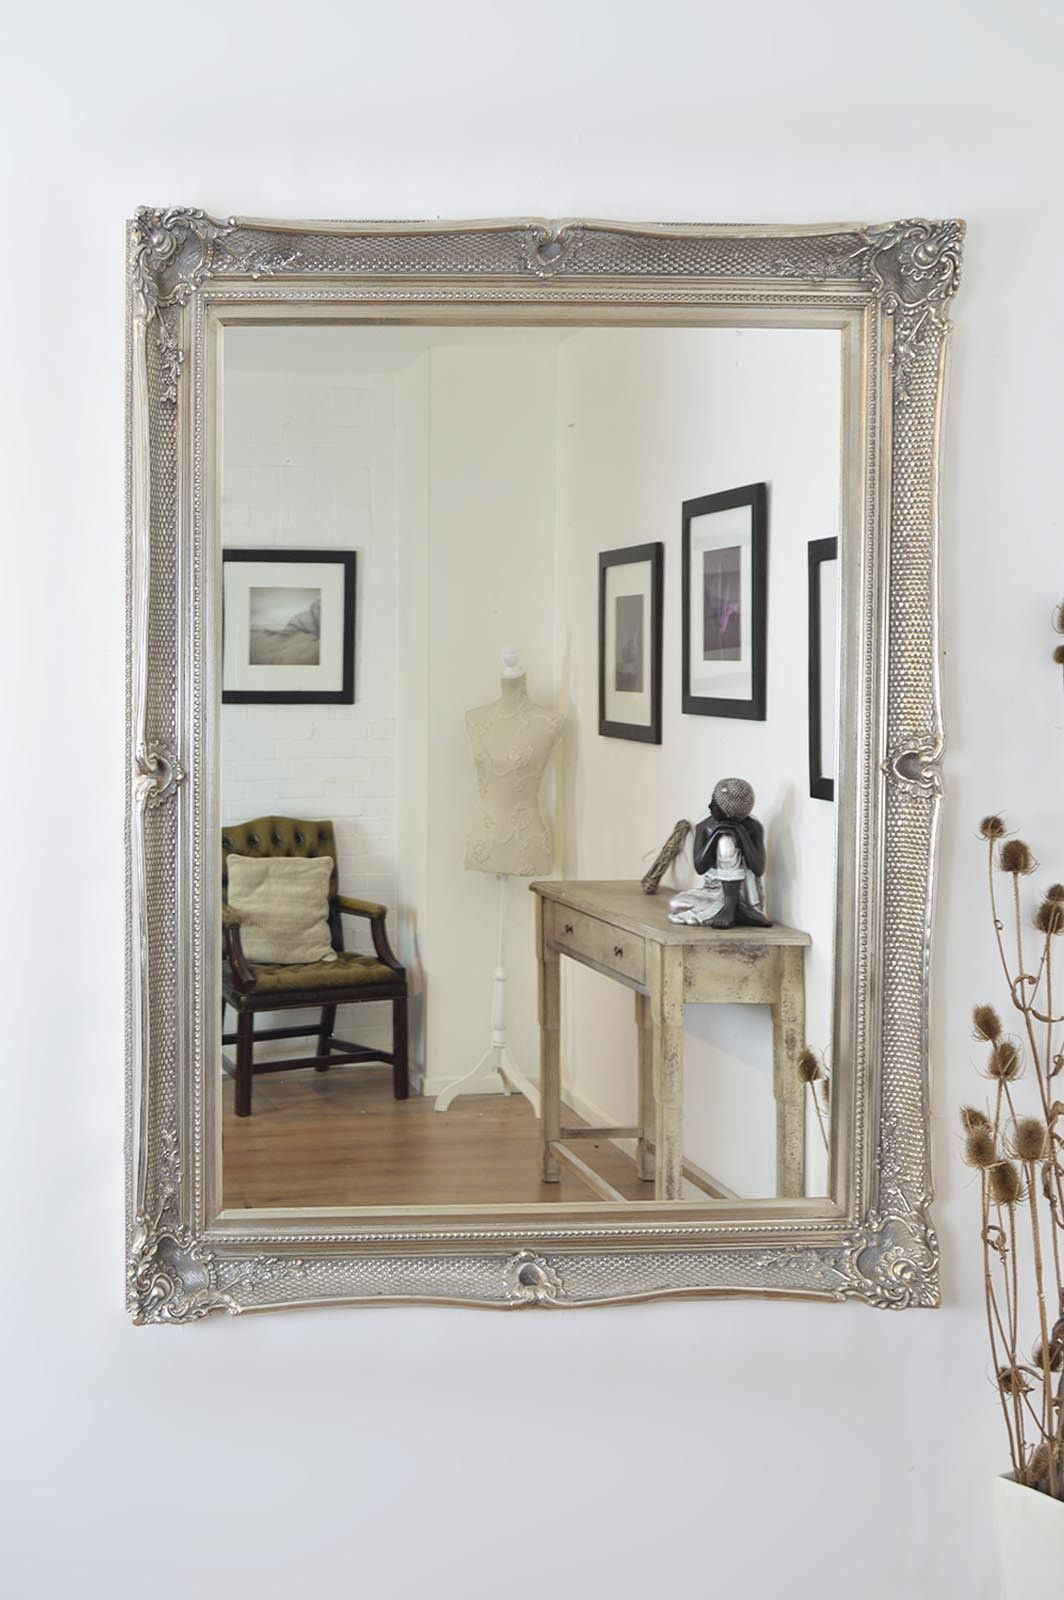 Silver Antique Style Mirror From Mirror Outlet Shabby Chic Mirror Mirror Wall Mirror Gallery #silver #mirrors #living #room